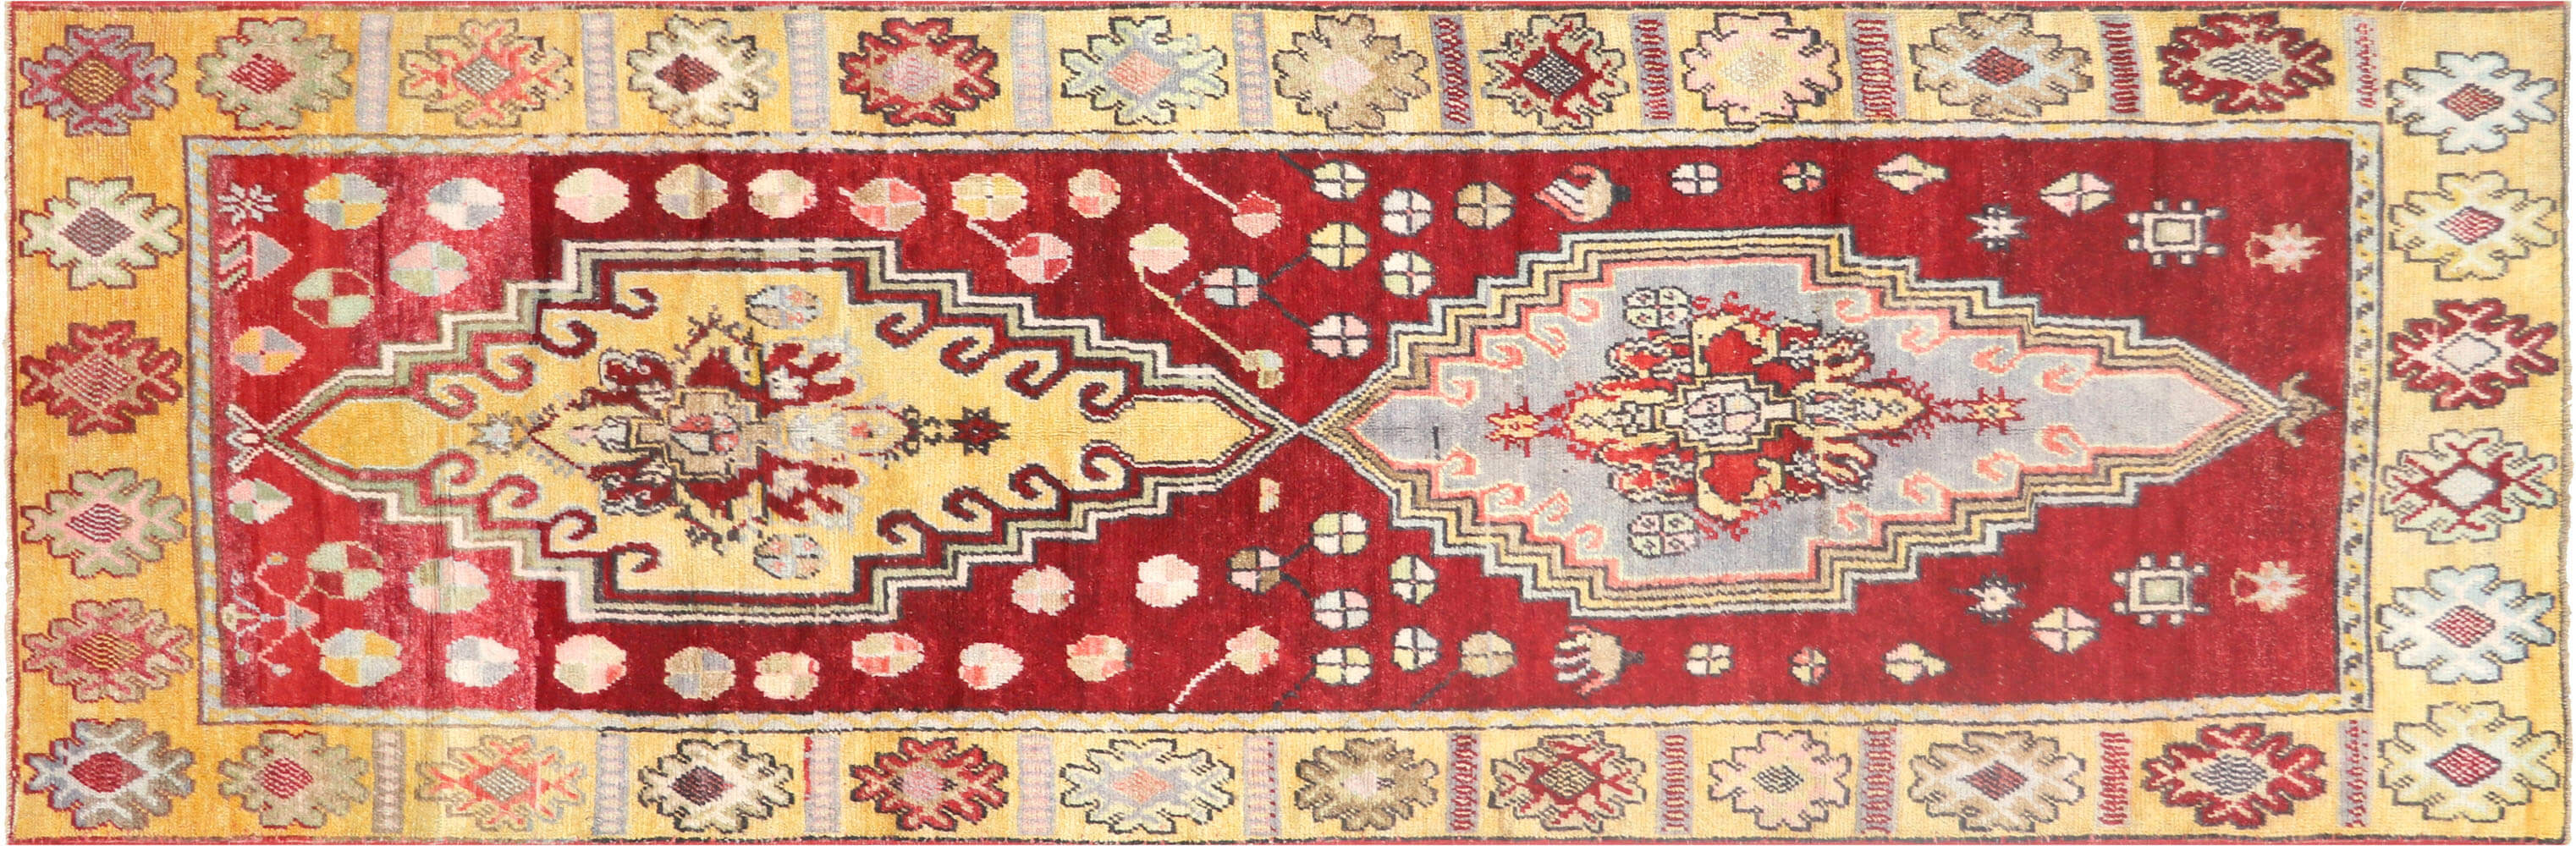 "Vintage Turkish Oushak Runner - 3'6"" x 10'7"""